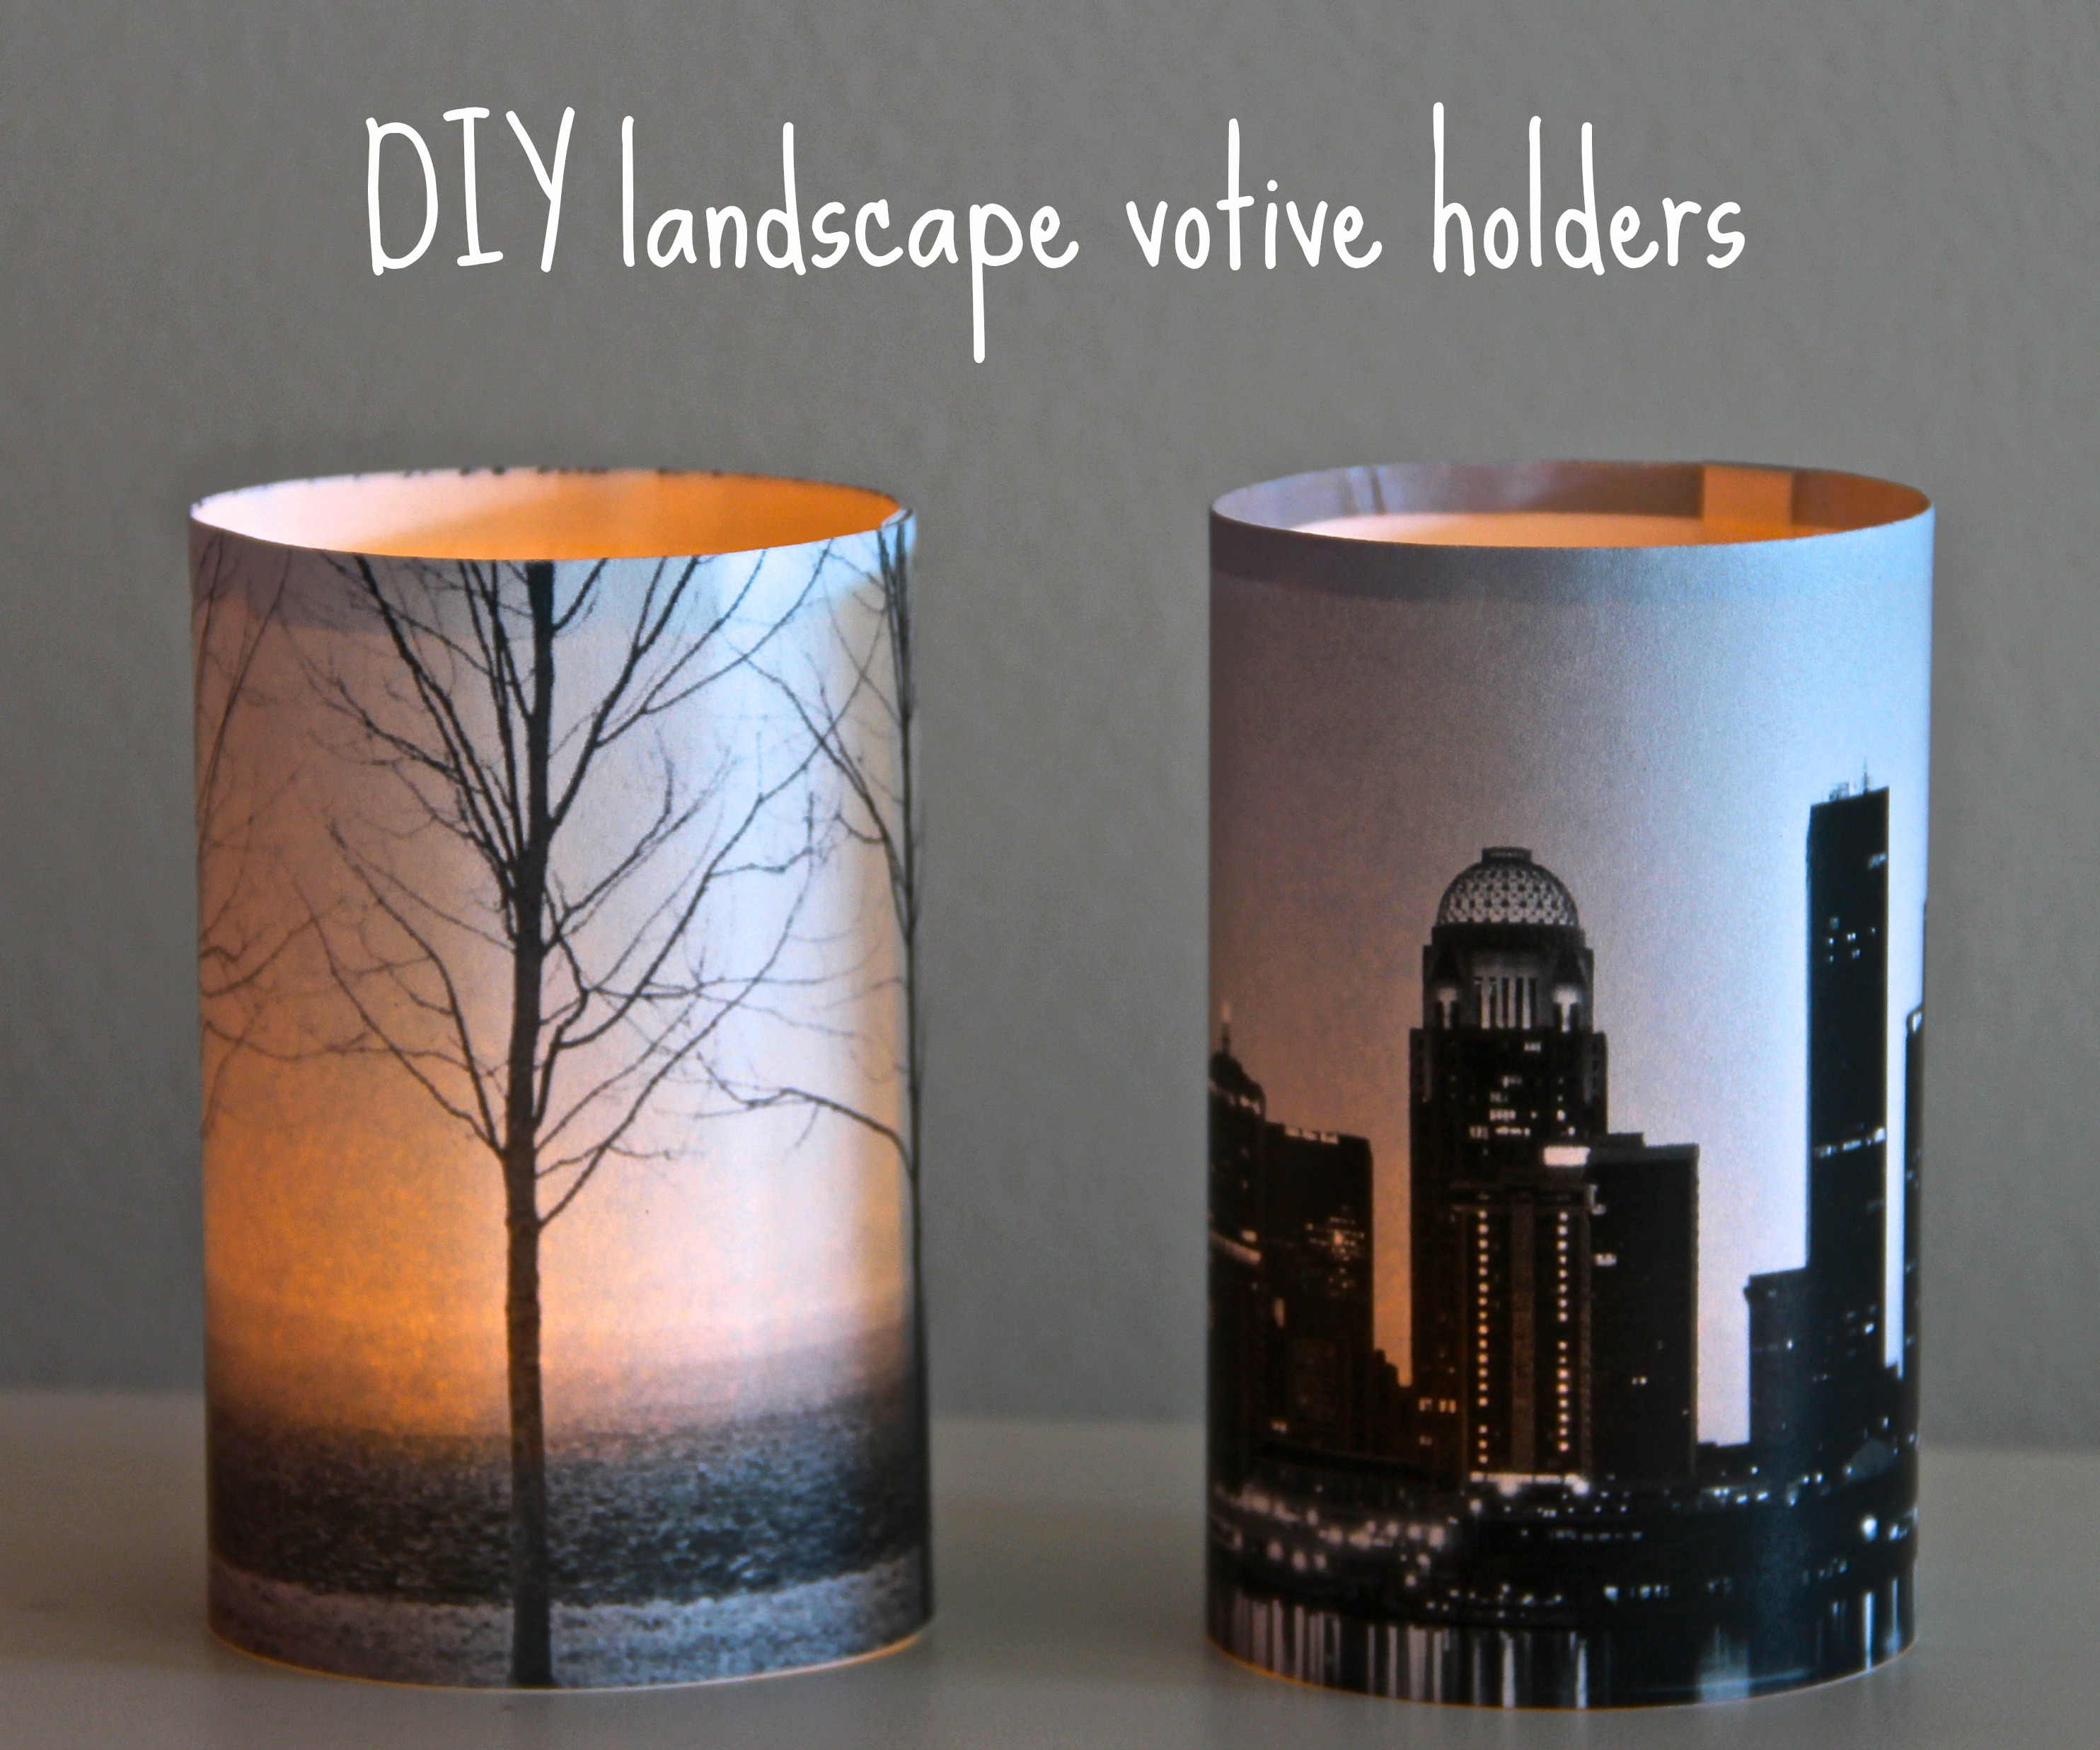 DIY landscape votive holders